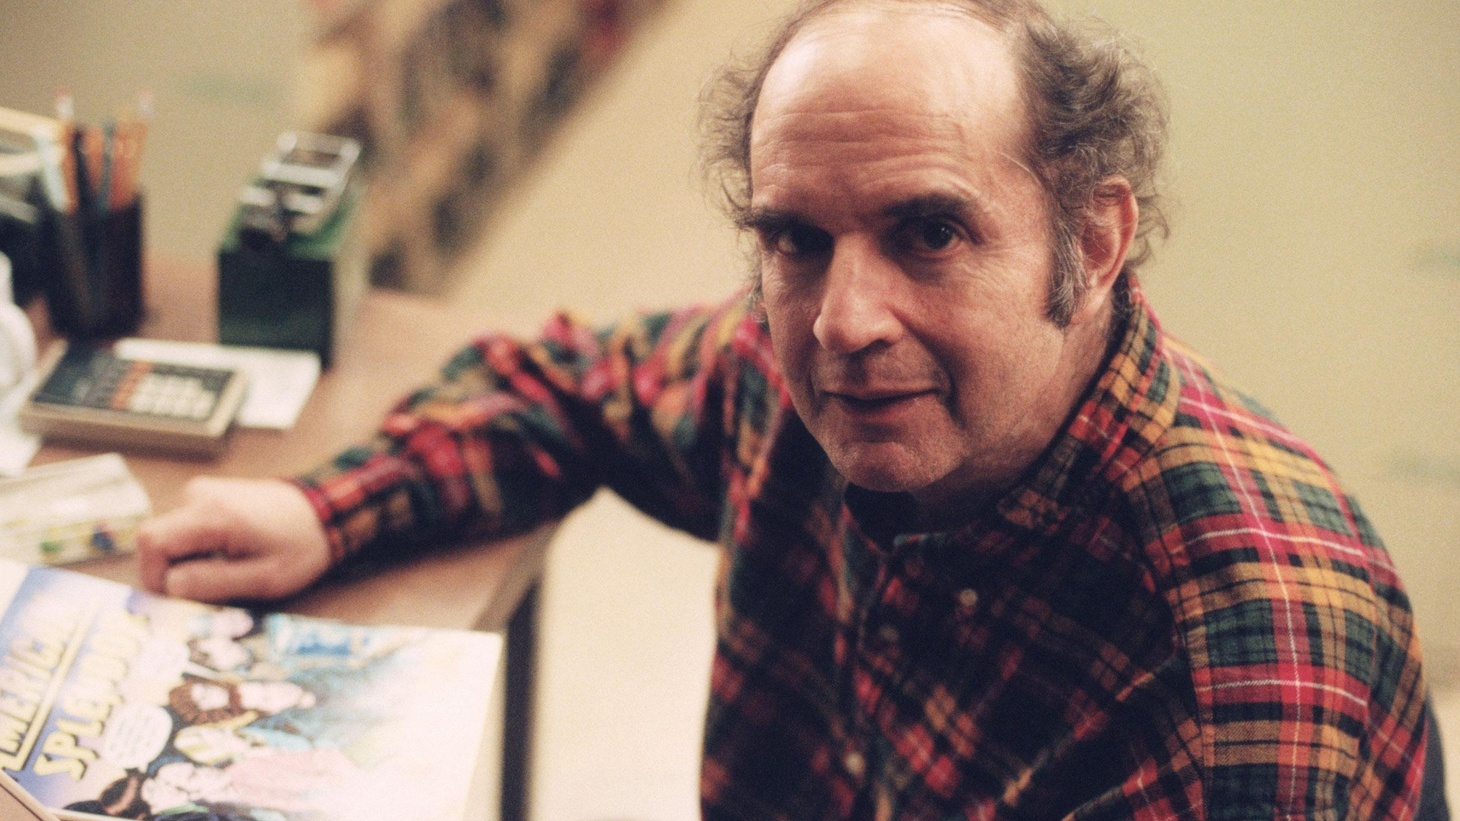 On December 6, 1991, KCRW broadcast an original radio production of Harvey Pekar's American Splendor. To honor Pekar's memory, KCRW will reprise the radio production on Friday, July 16 from 7:30-8 pm, on air and KCRW.com Live stream only. (It will not be available on